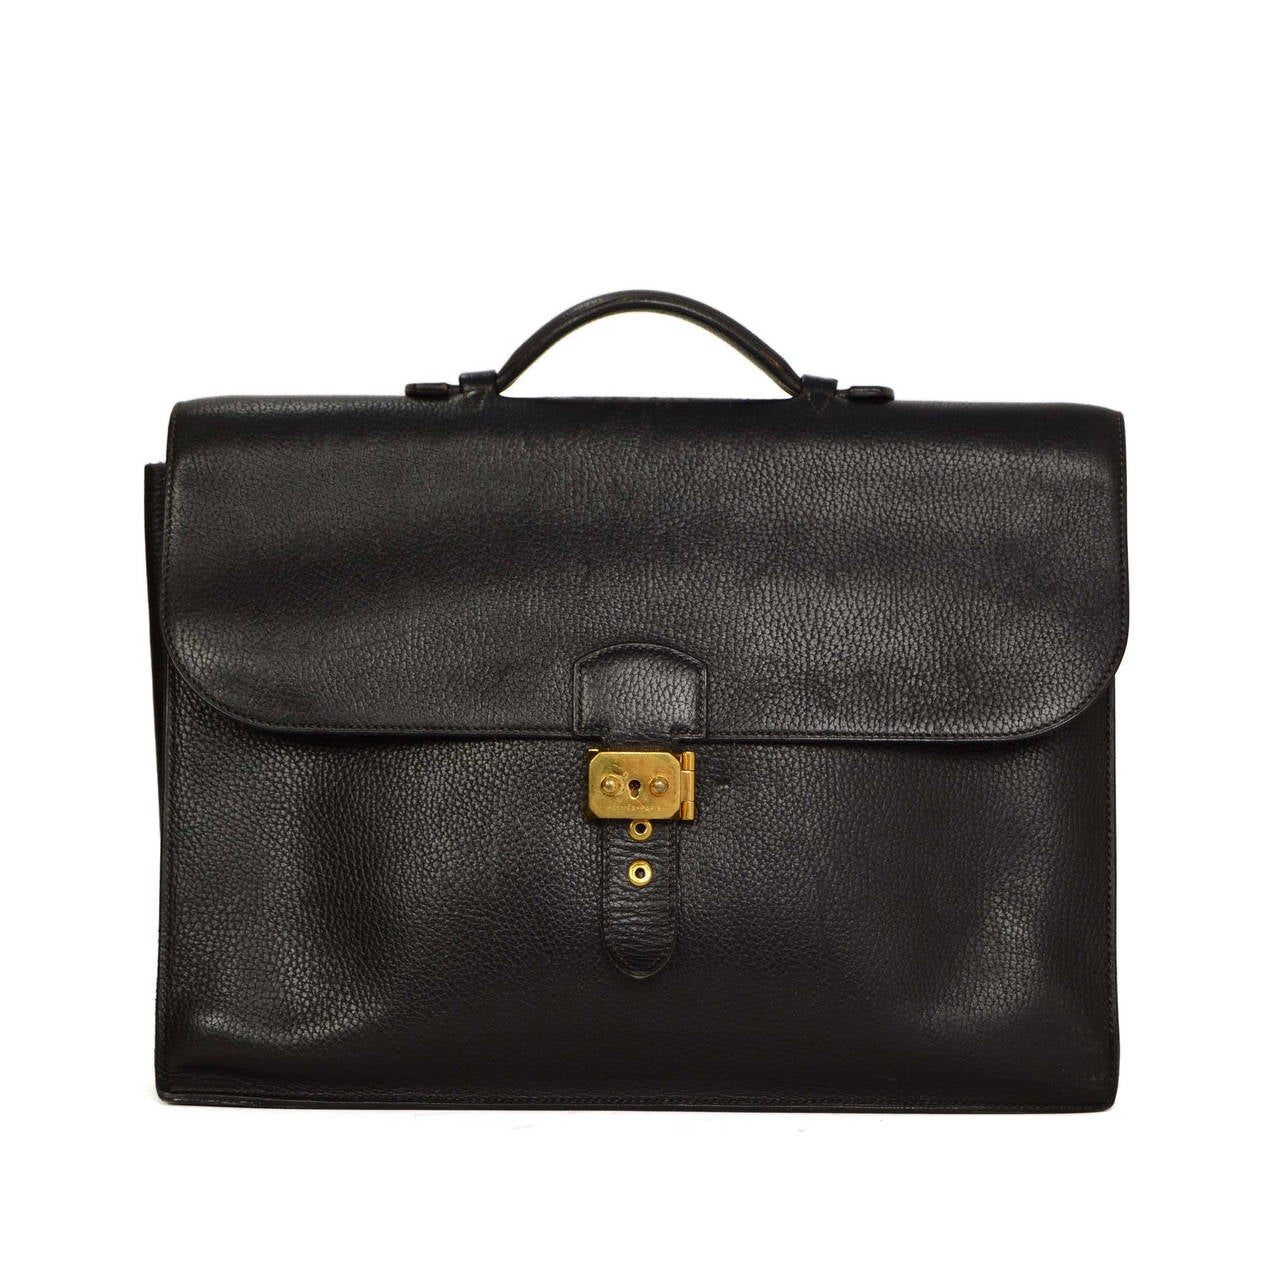 hermes vintage 39 94 black ardennes leather 38cm sac a depeche briefcase ghw at 1stdibs. Black Bedroom Furniture Sets. Home Design Ideas